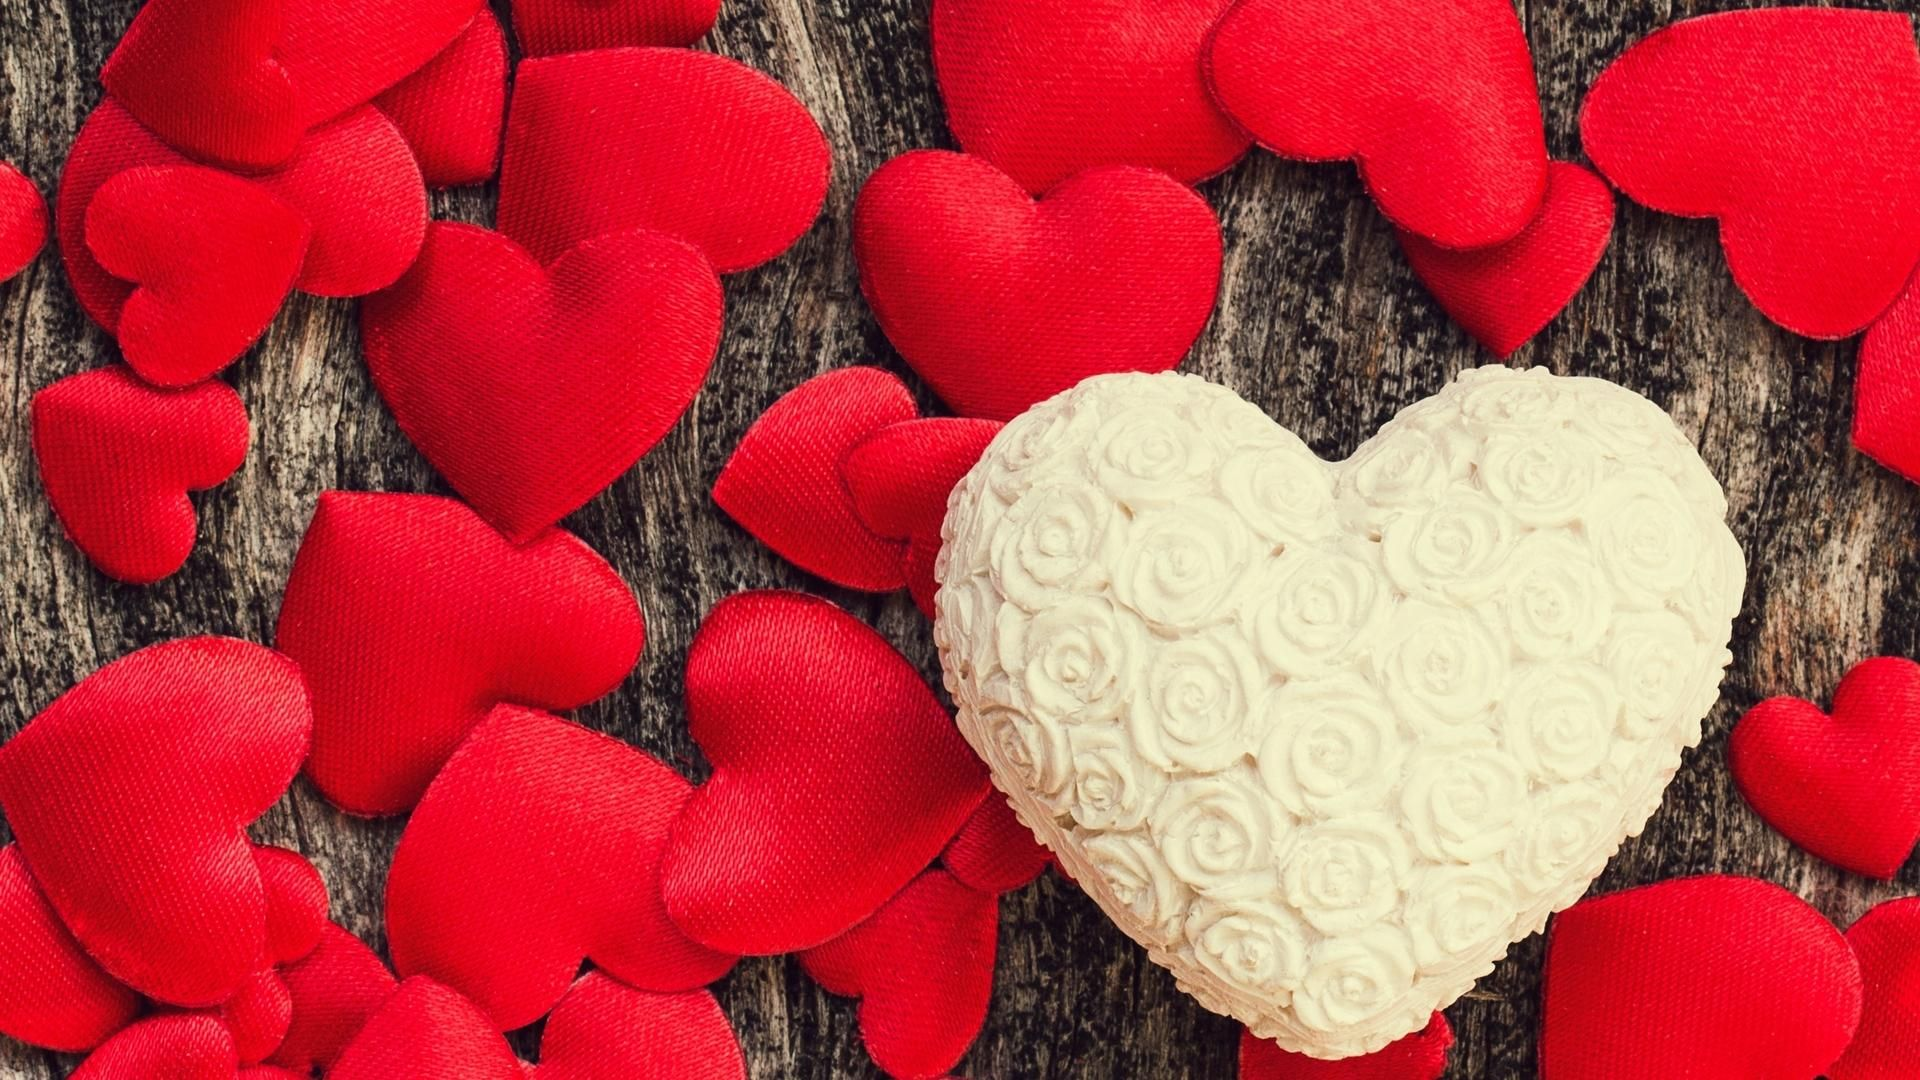 Heart background picture hd